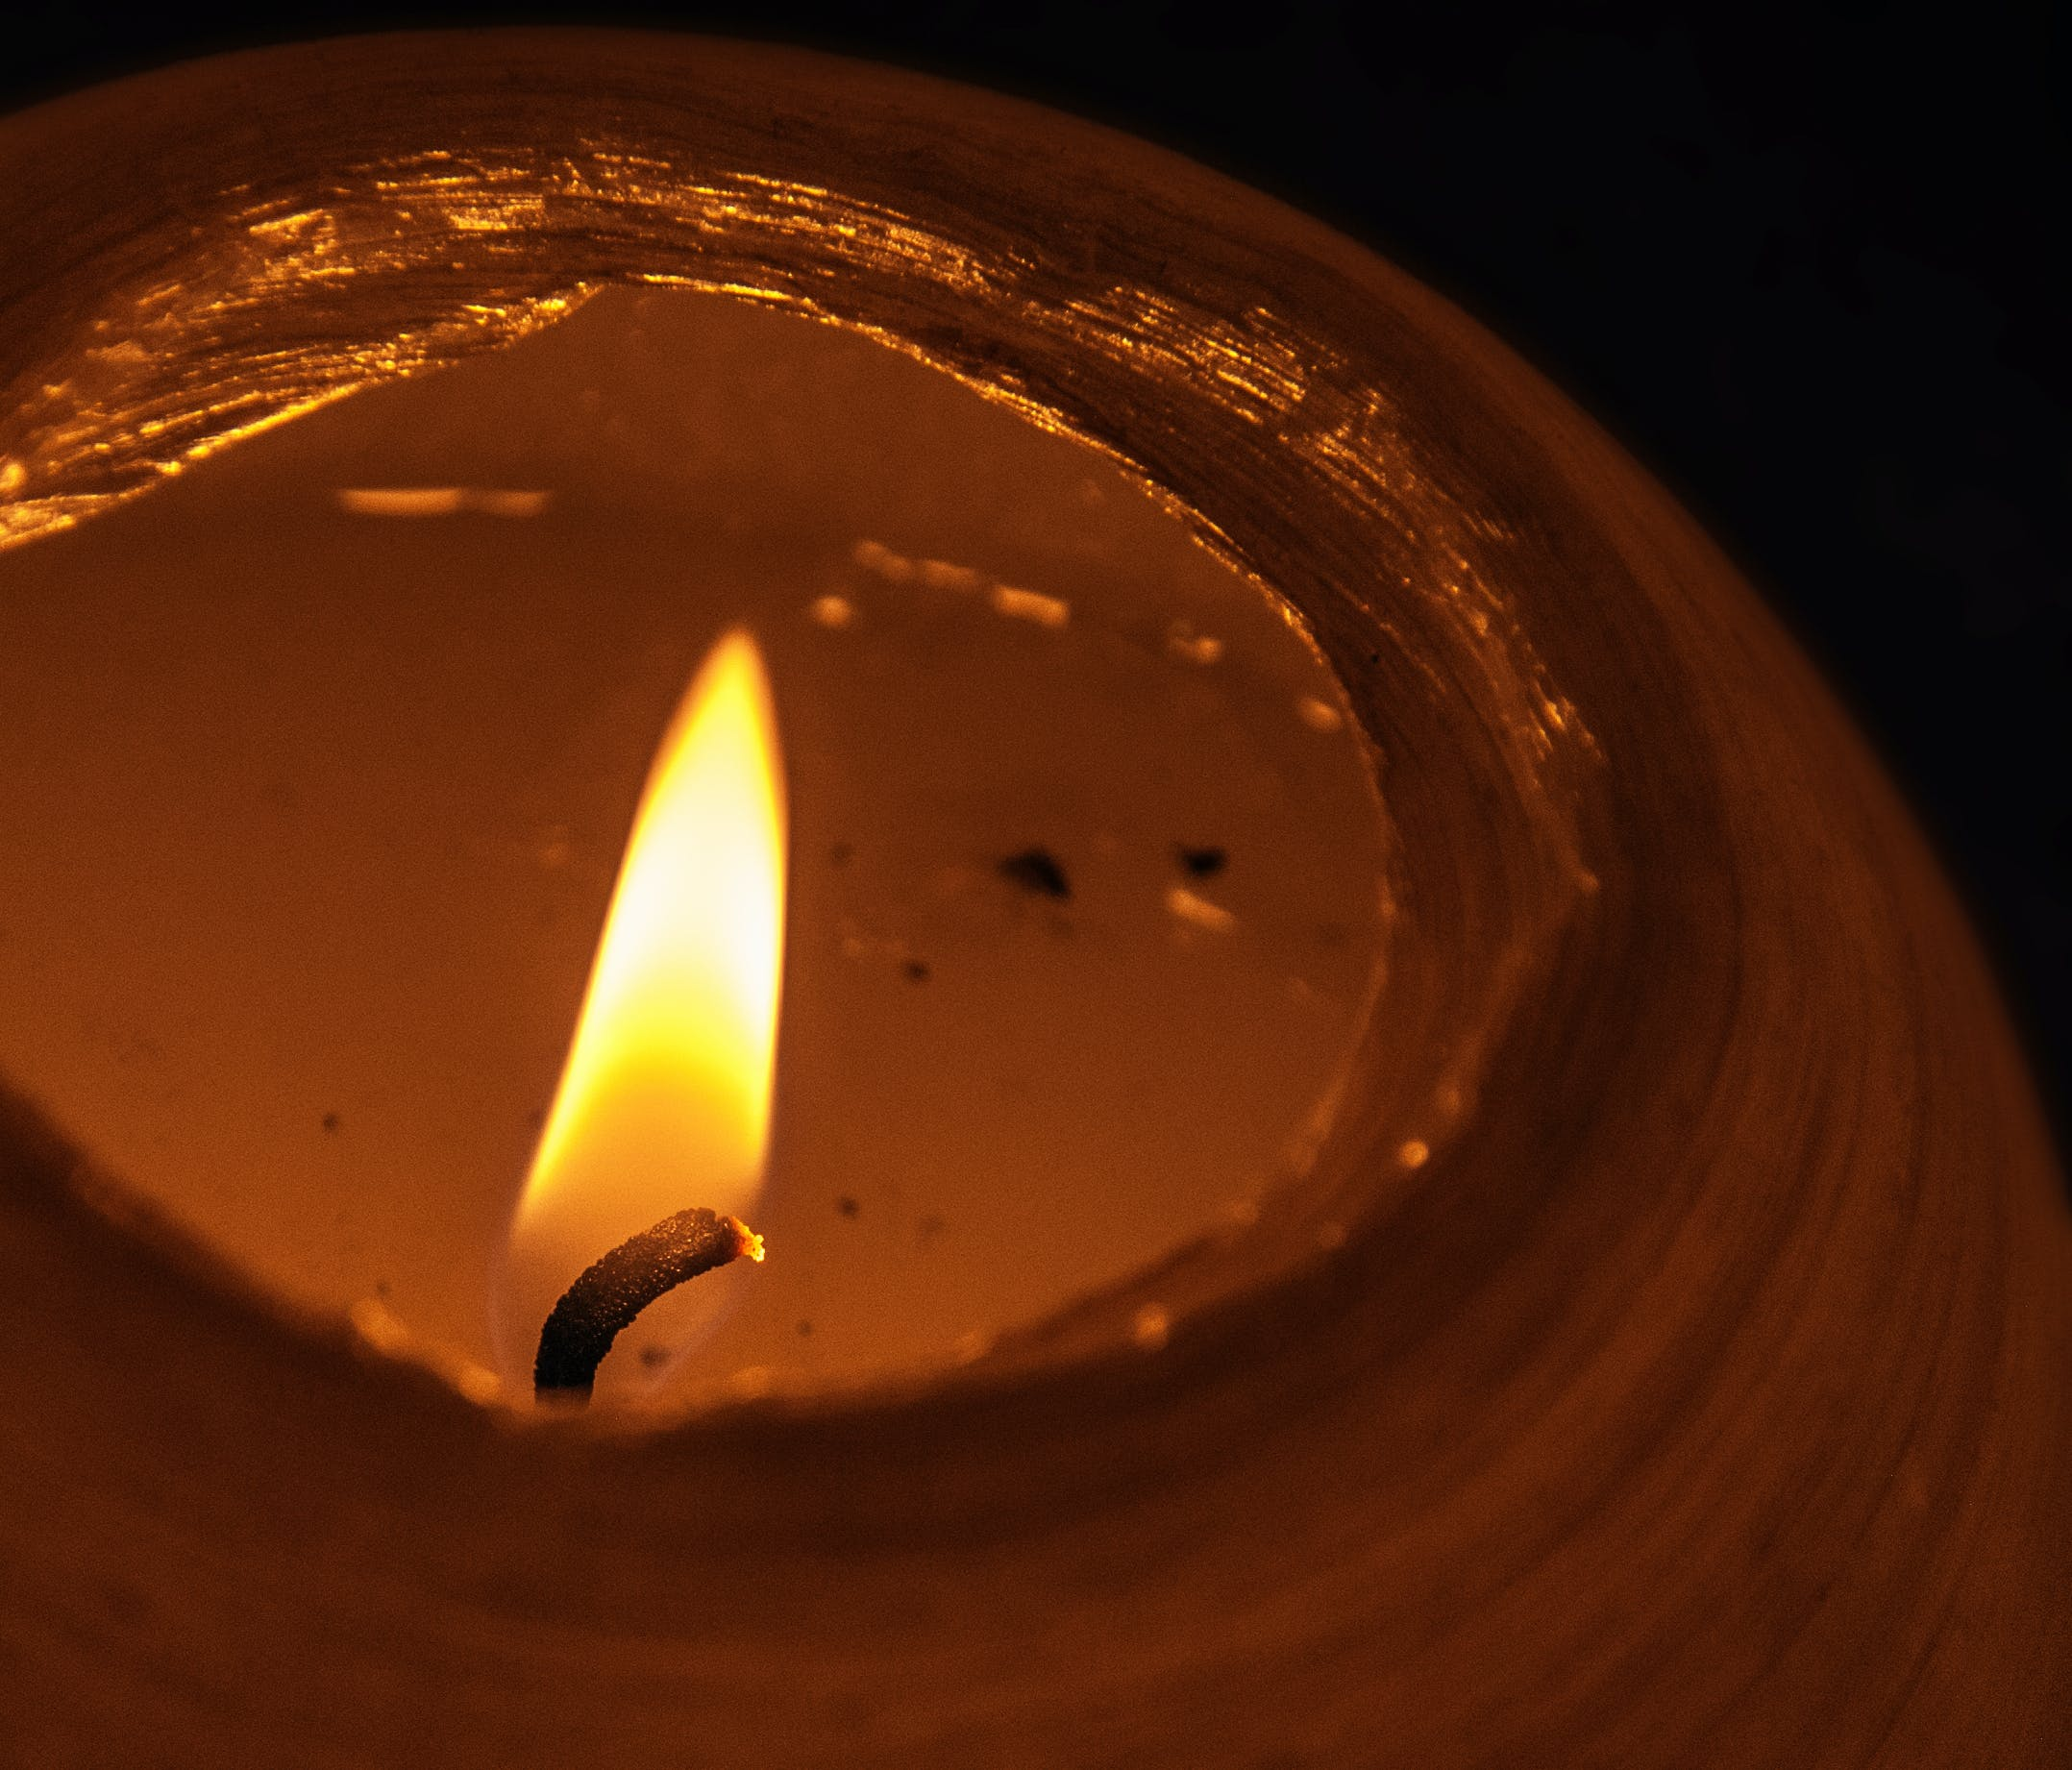 Free stock photo of night, candle, flame